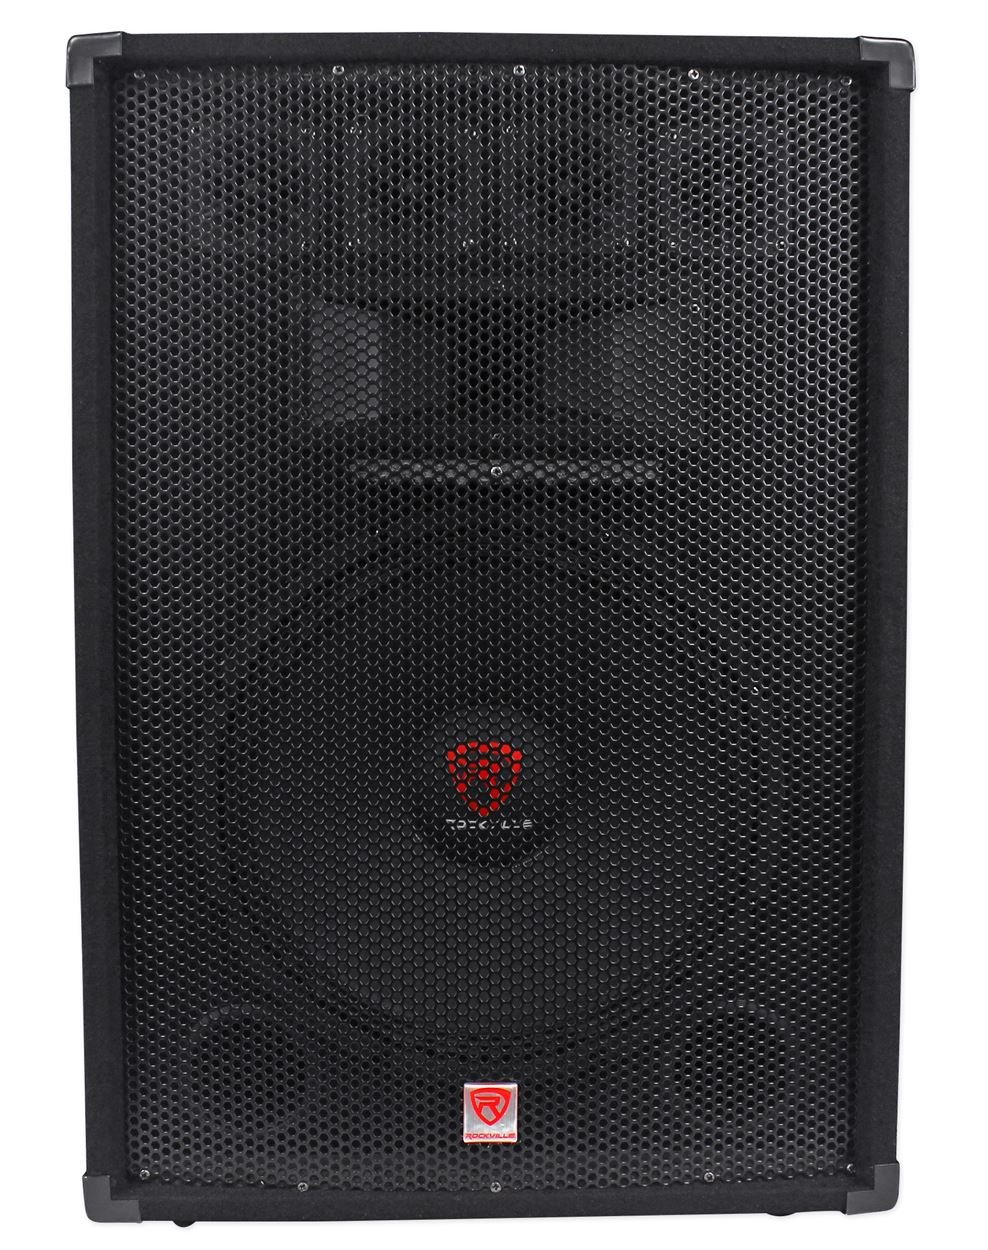 "Rockville RSG15.24 Dual 15"" 3000 Watt 3-Way 4-Ohm Passive DJ/Pro Audio Speaker Audiosavings"